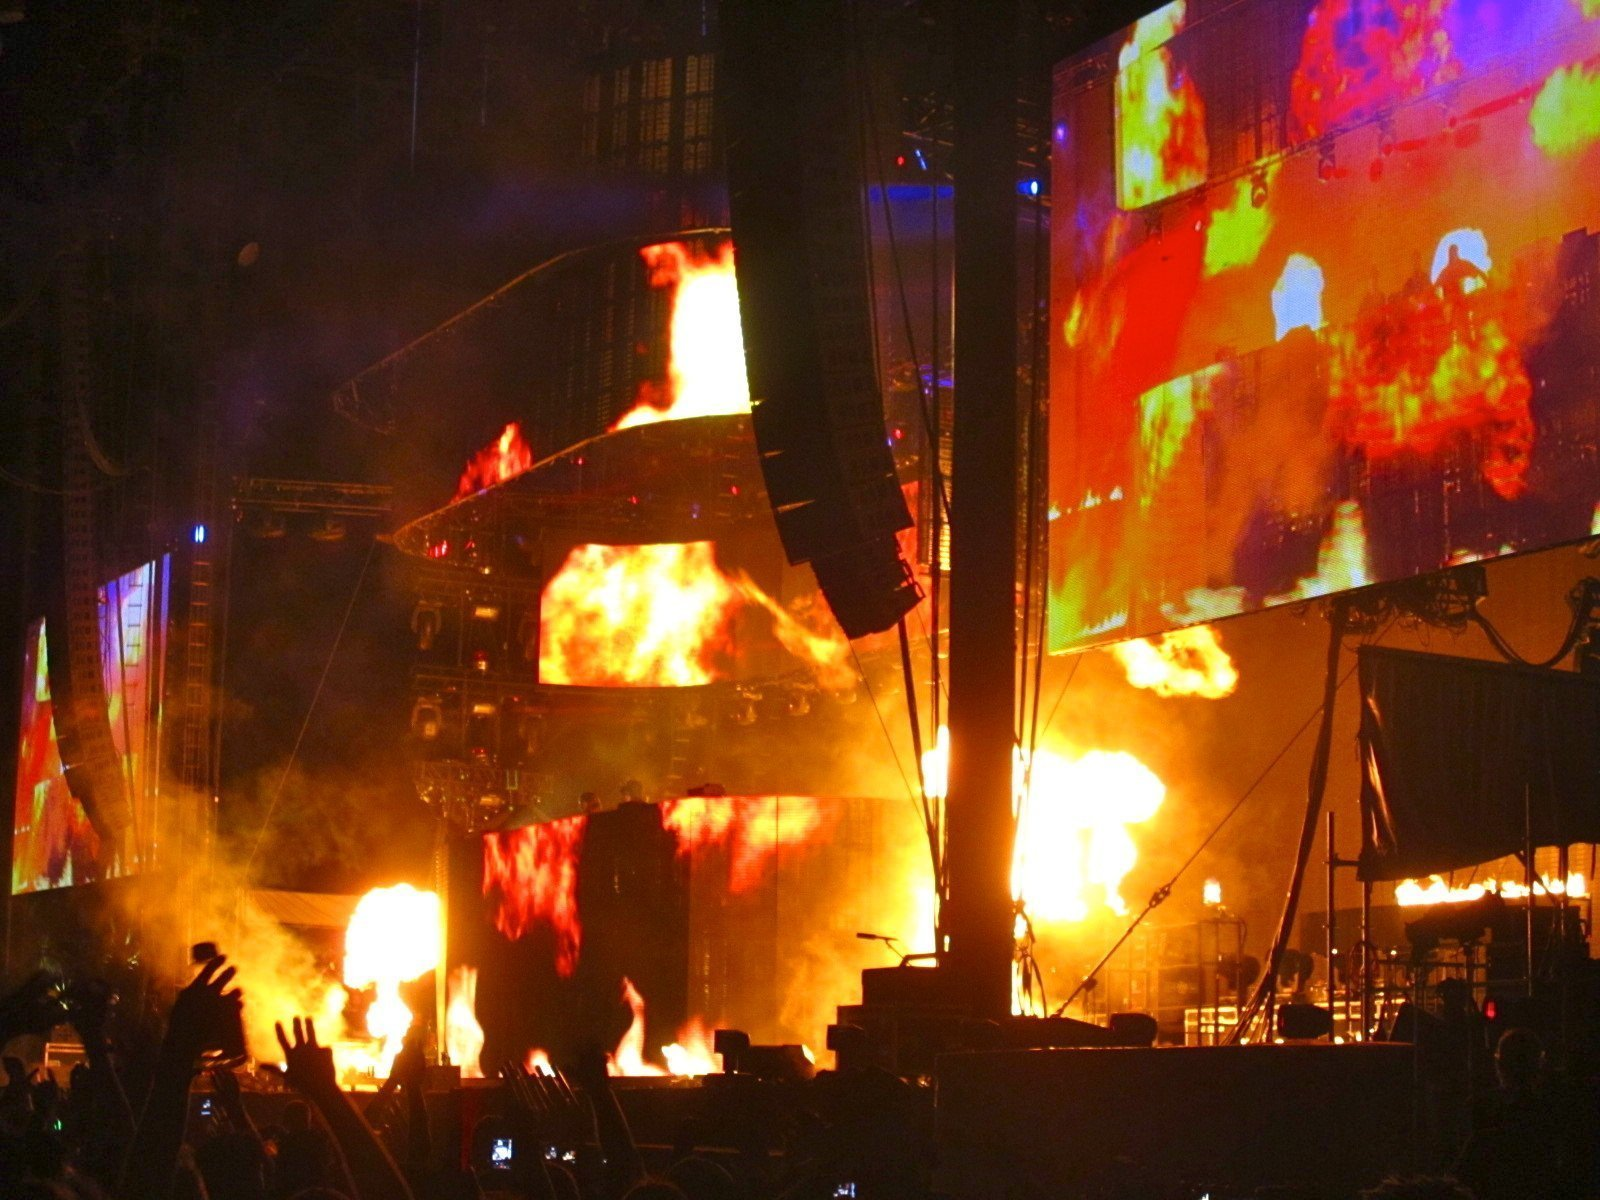 Swedish House Mafia basically lit the whole stage on fire